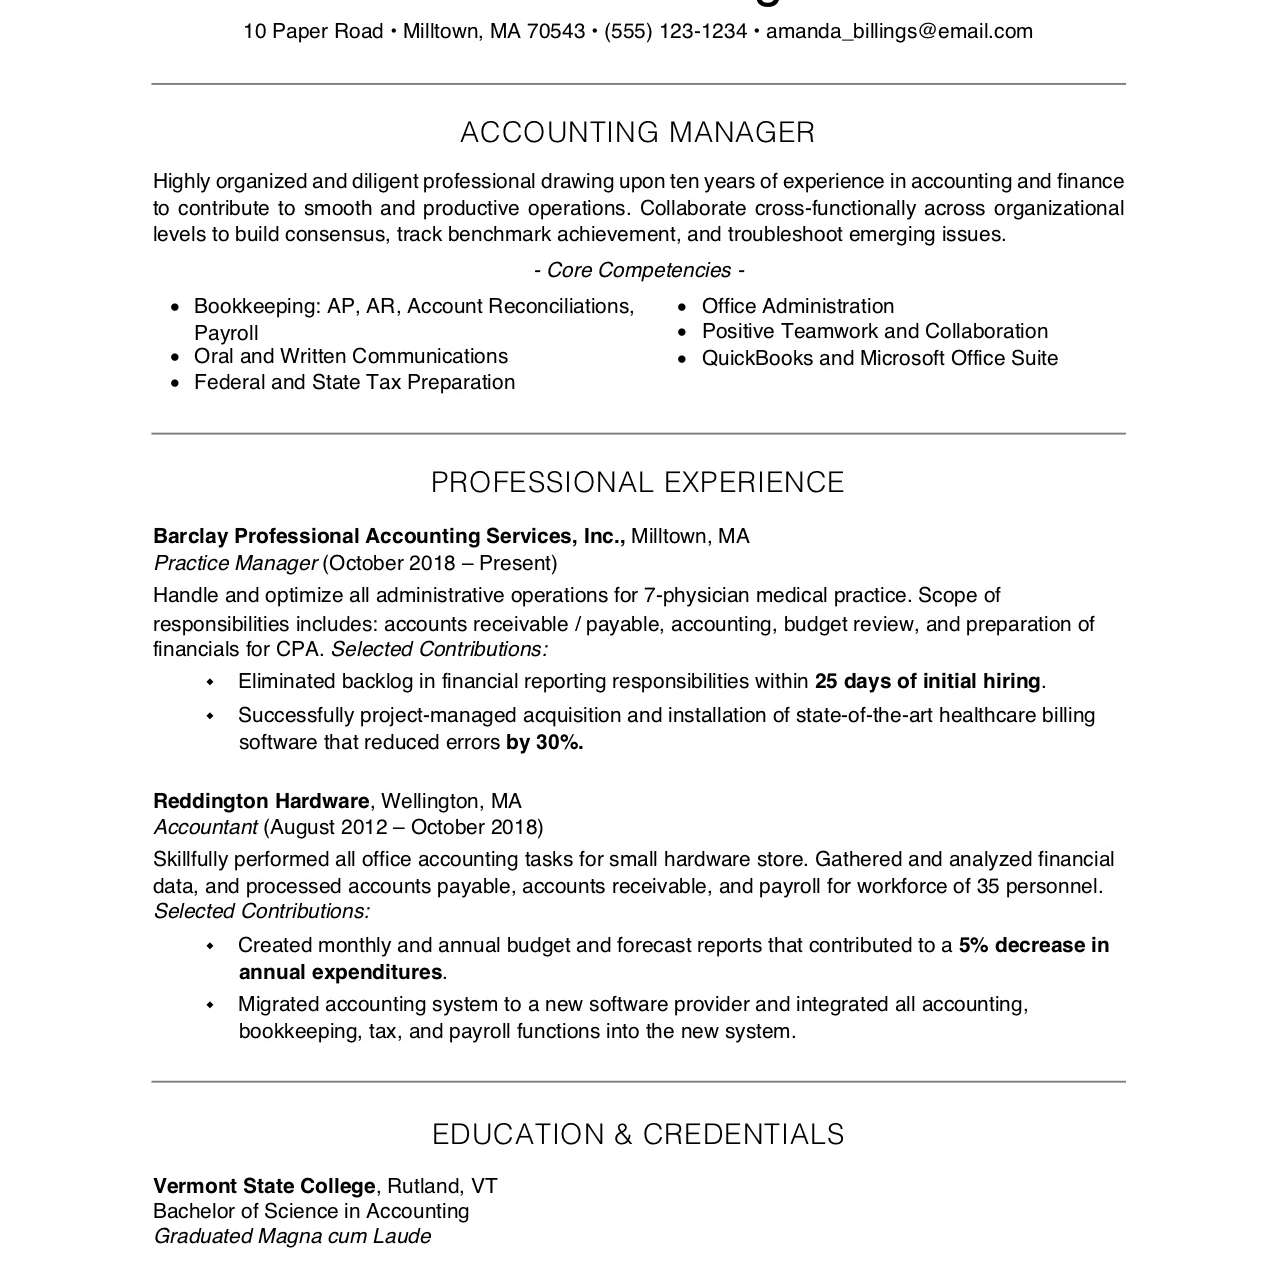 free professional resume examples and writing tips outline paper example 2063596res1 Resume Outline Resume Paper Example